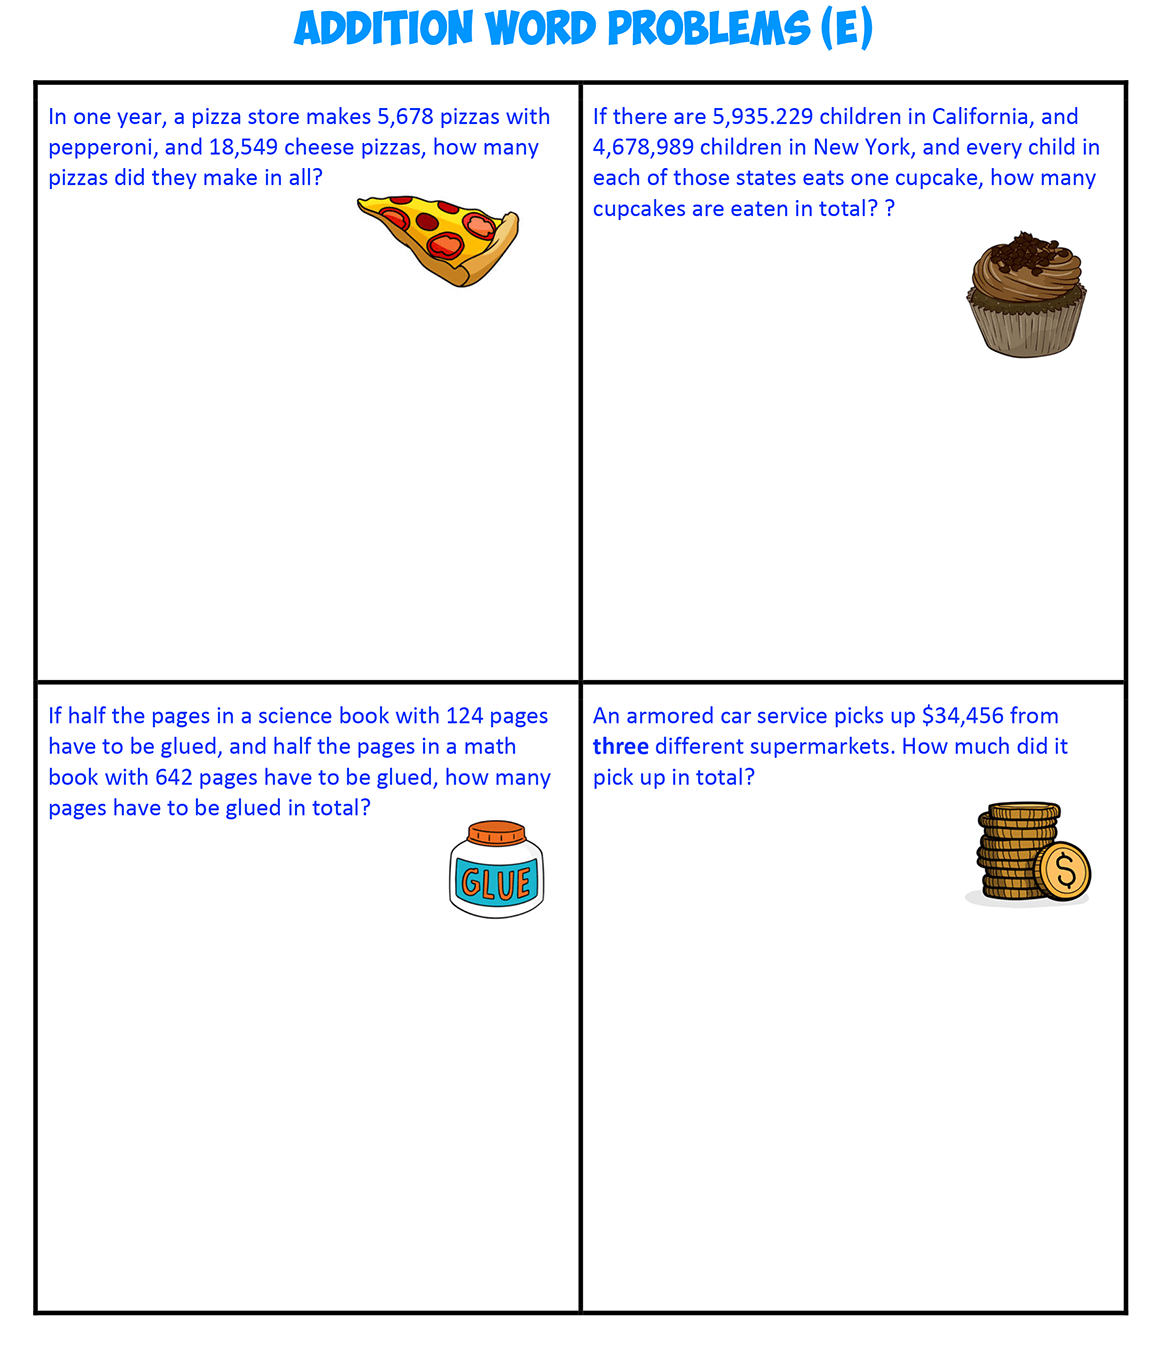 Addition Word Problems E